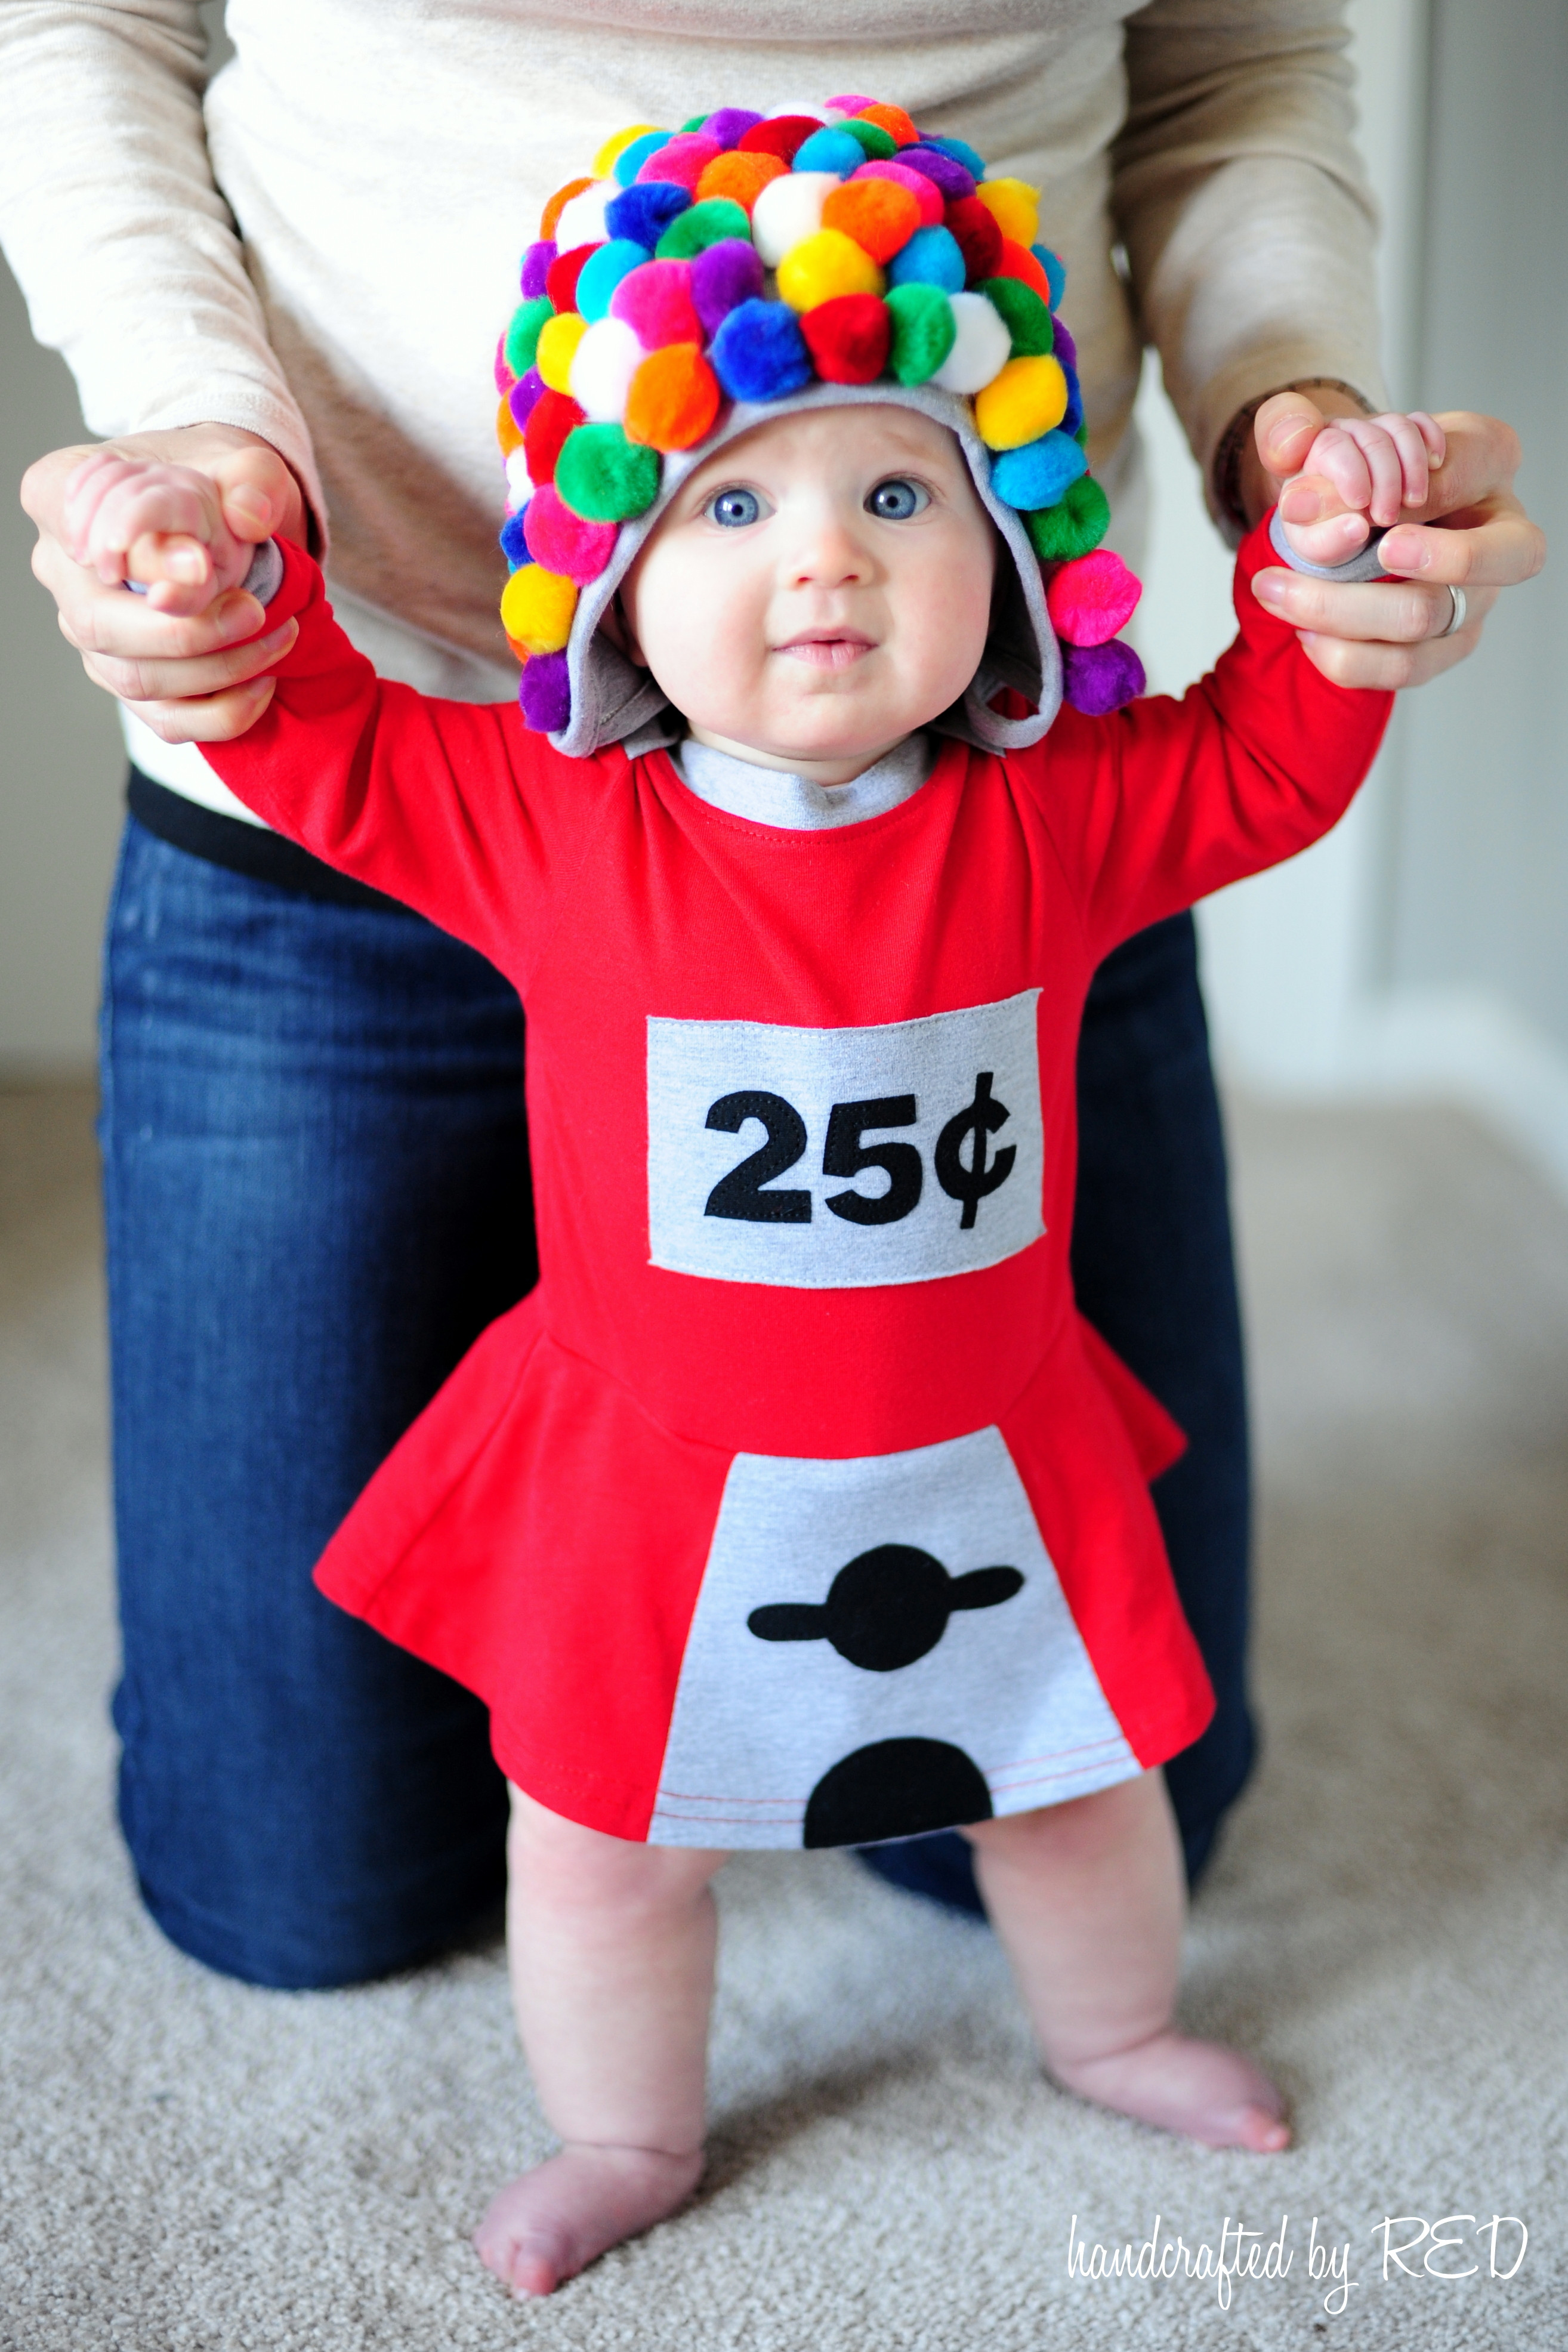 Best ideas about DIY Infant Costume . Save or Pin DIY Baby Gumball Machine Costume Peek a Boo Pages Now.